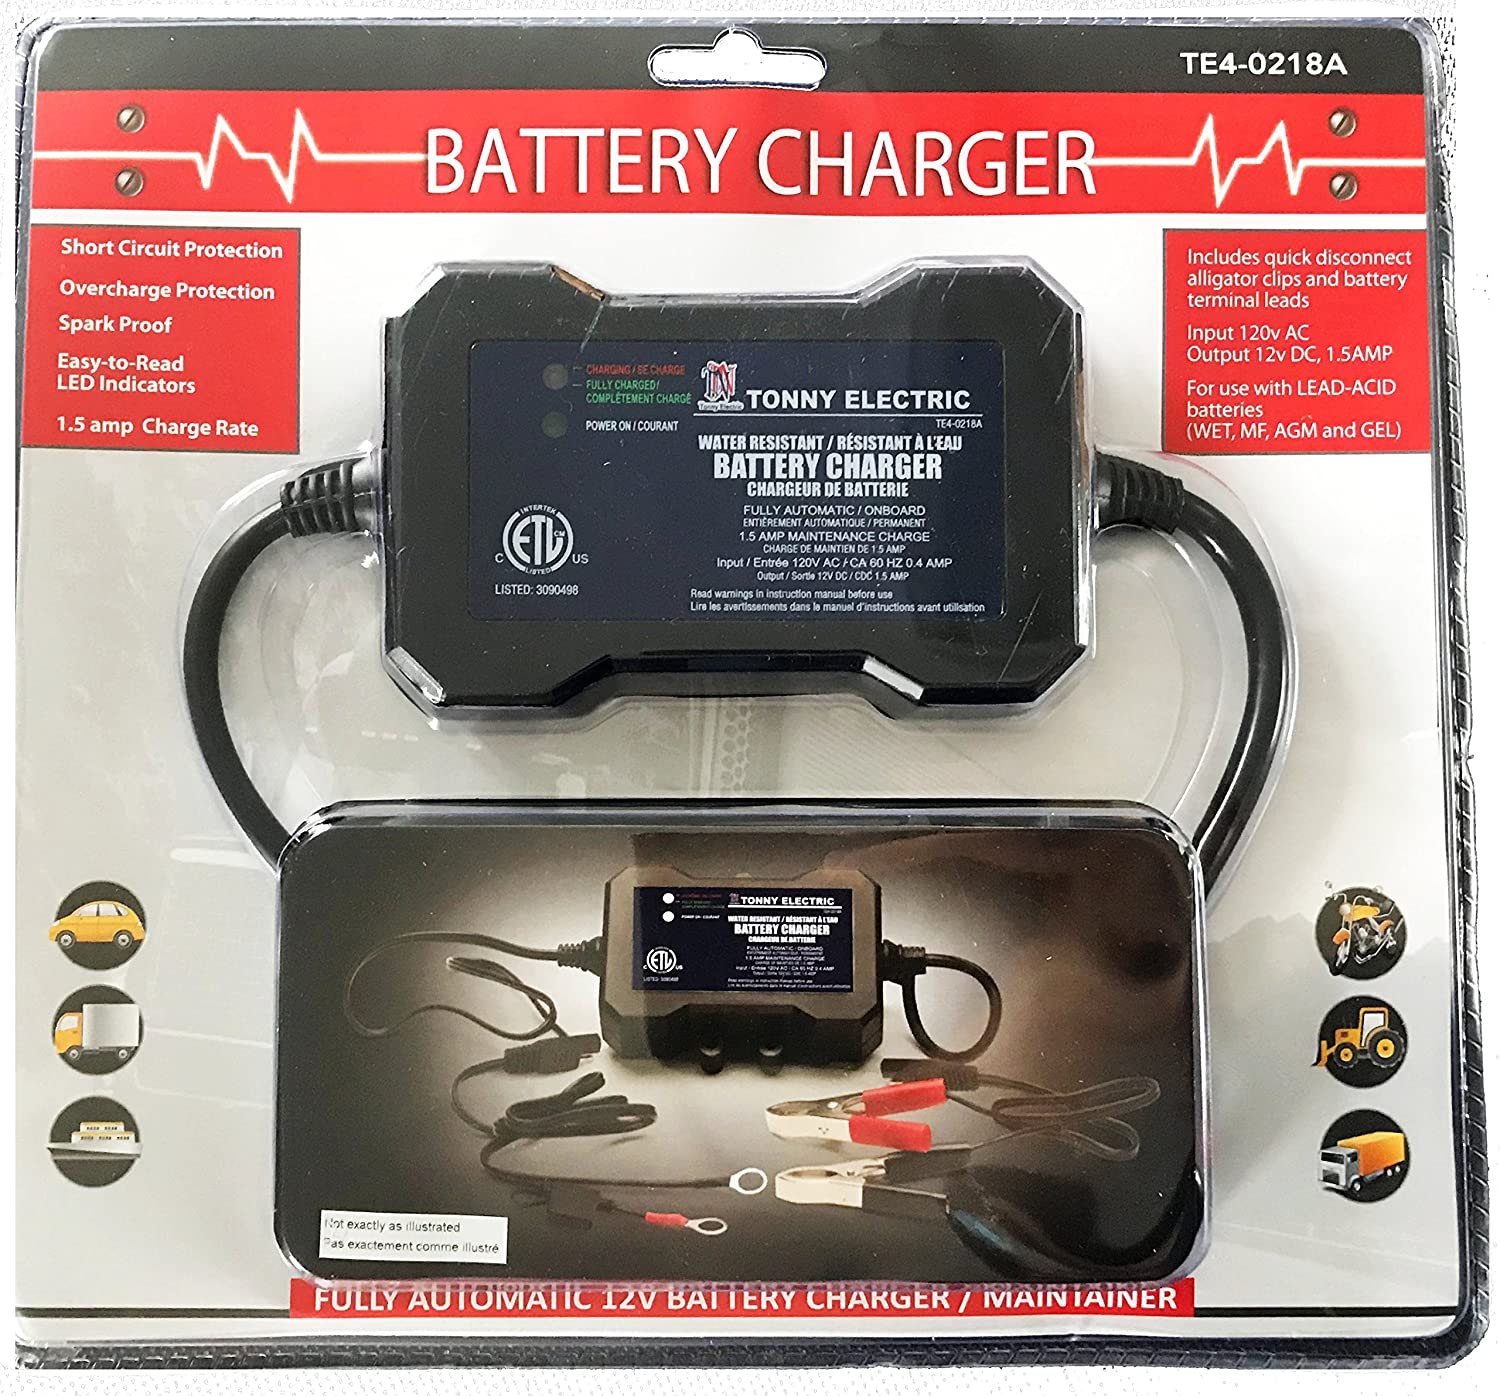 battery charger maintainer 1 5 amp, battery chargers amazon canada